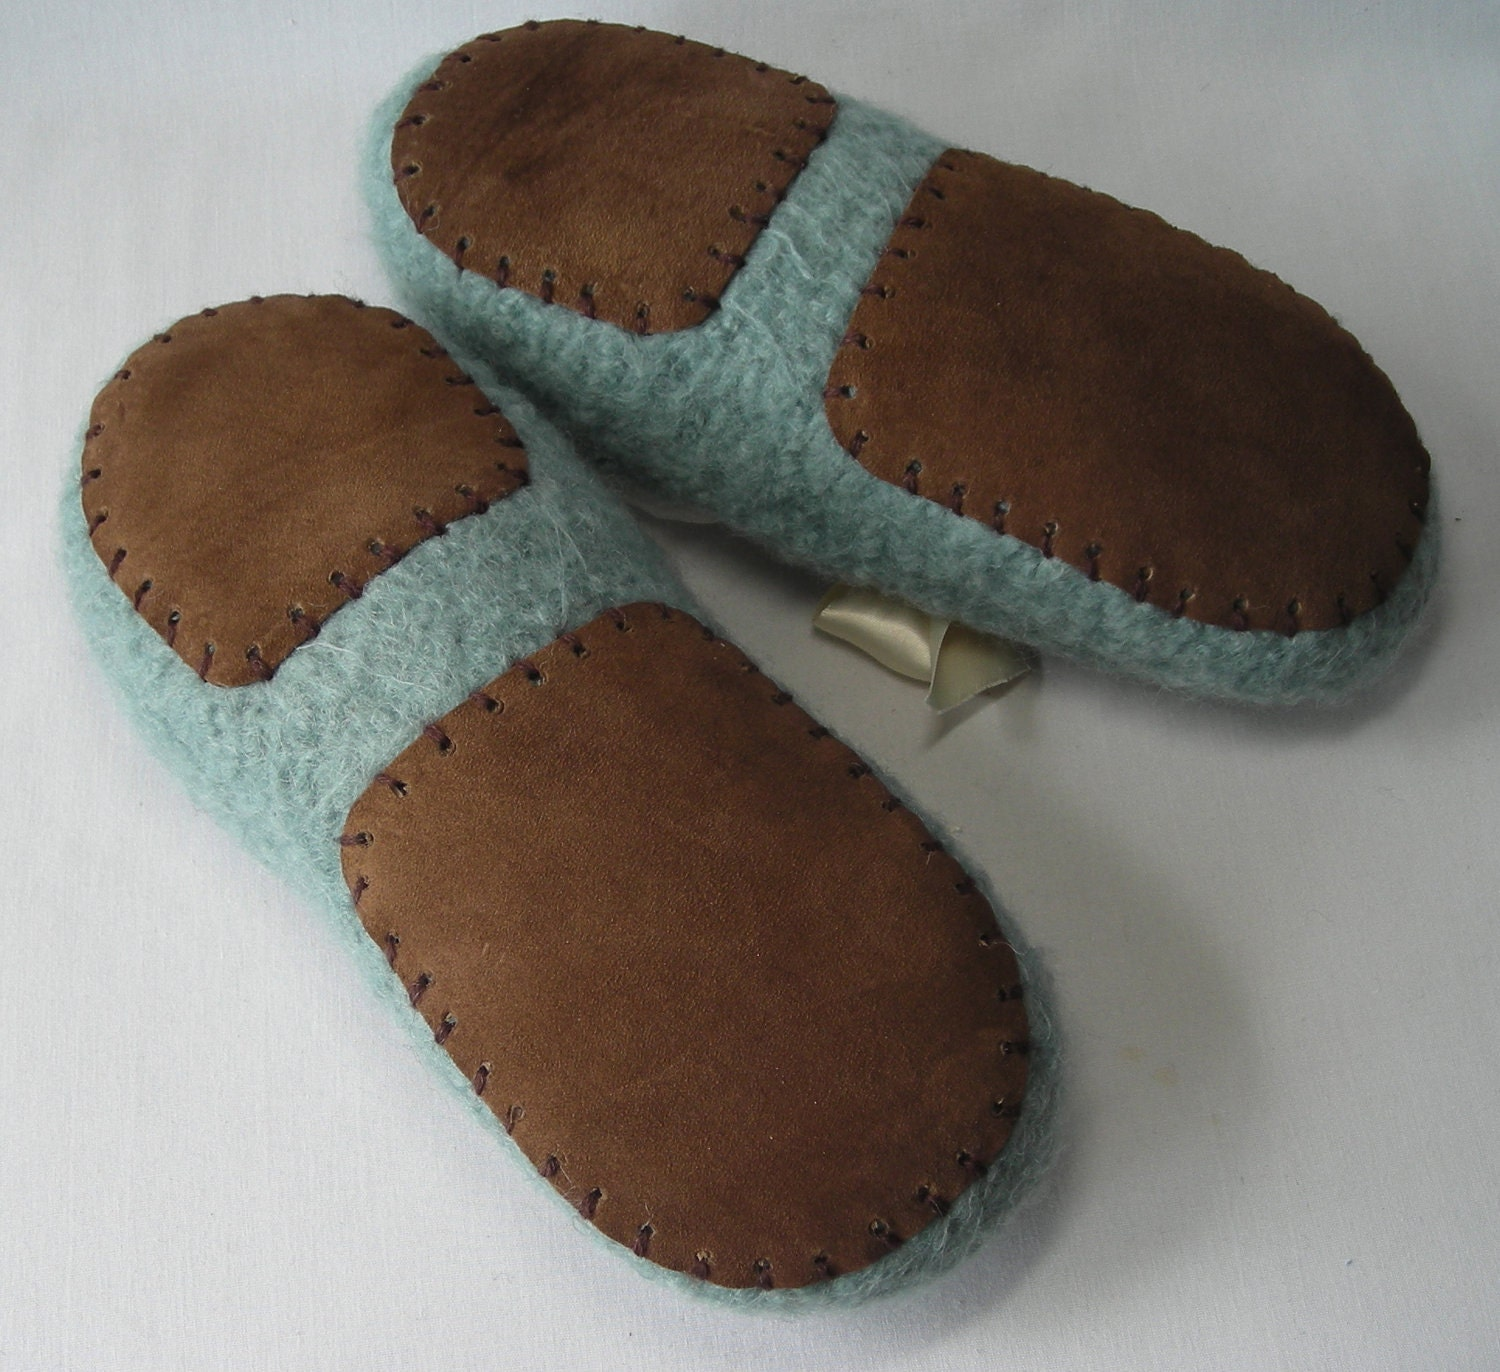 German-Slippers is the gate to the world of fine Austrian and German clogs, mules, home shoes, house and bedroom slippers for people of all ages and from all walks of life. We offer free shipping worldwide on all our house shoes – be it men's slippers, clogs for men, women's slippers or clogs for women.